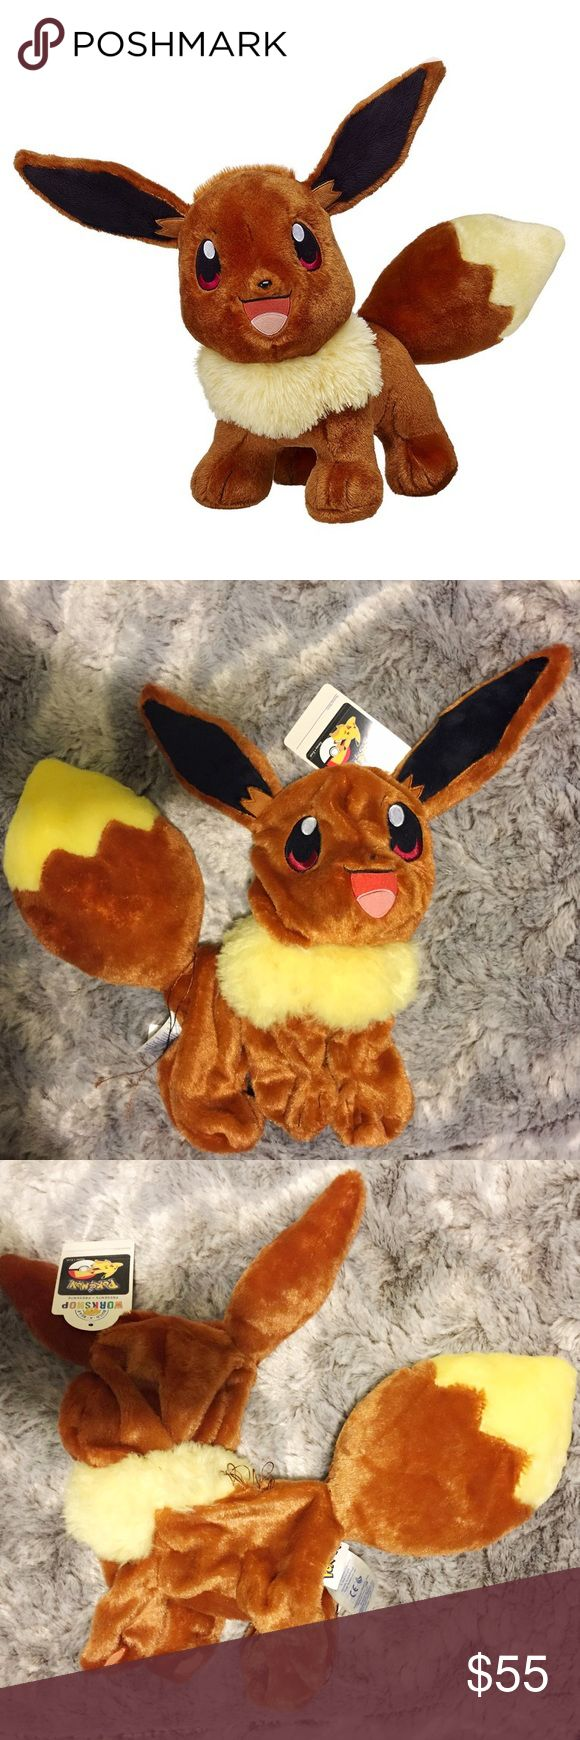 Build A Bear Pokemon Eevee Unstuffed Plush Brand new with tags! This Build A Bear Pokemon Eevee Unstuffed Plush is a must have for any Pokemon fan! Eevee will come unstuffed so you can bring your little one to your local Build A Bear to have it stuffed! I also have the Pokeball Pajama Hoodie outfit available in my closet! Build A Bear Other